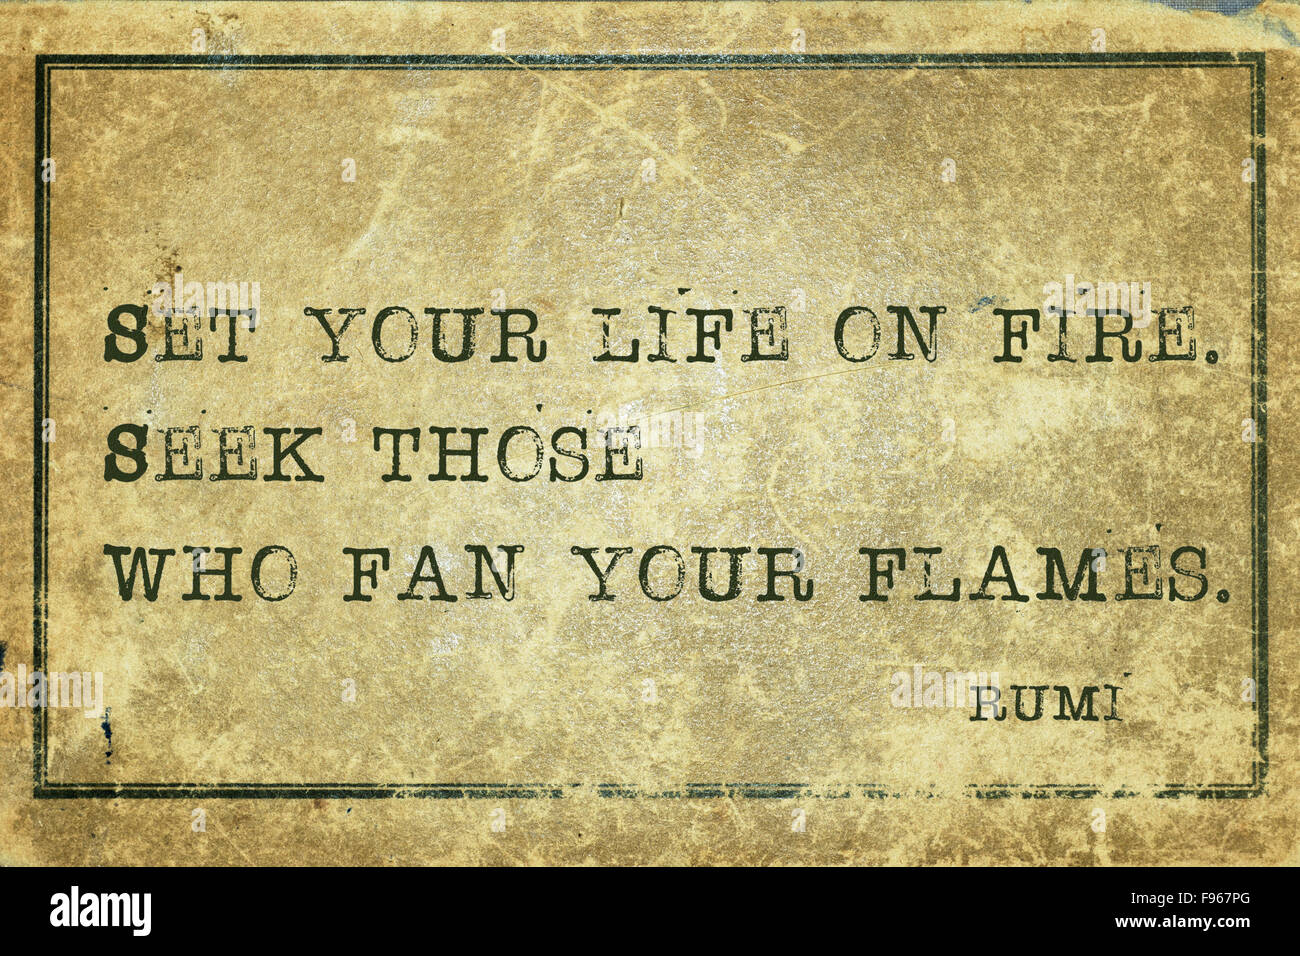 Set Your Life On Fire Ancient Persian Poet And Philosopher Rumi